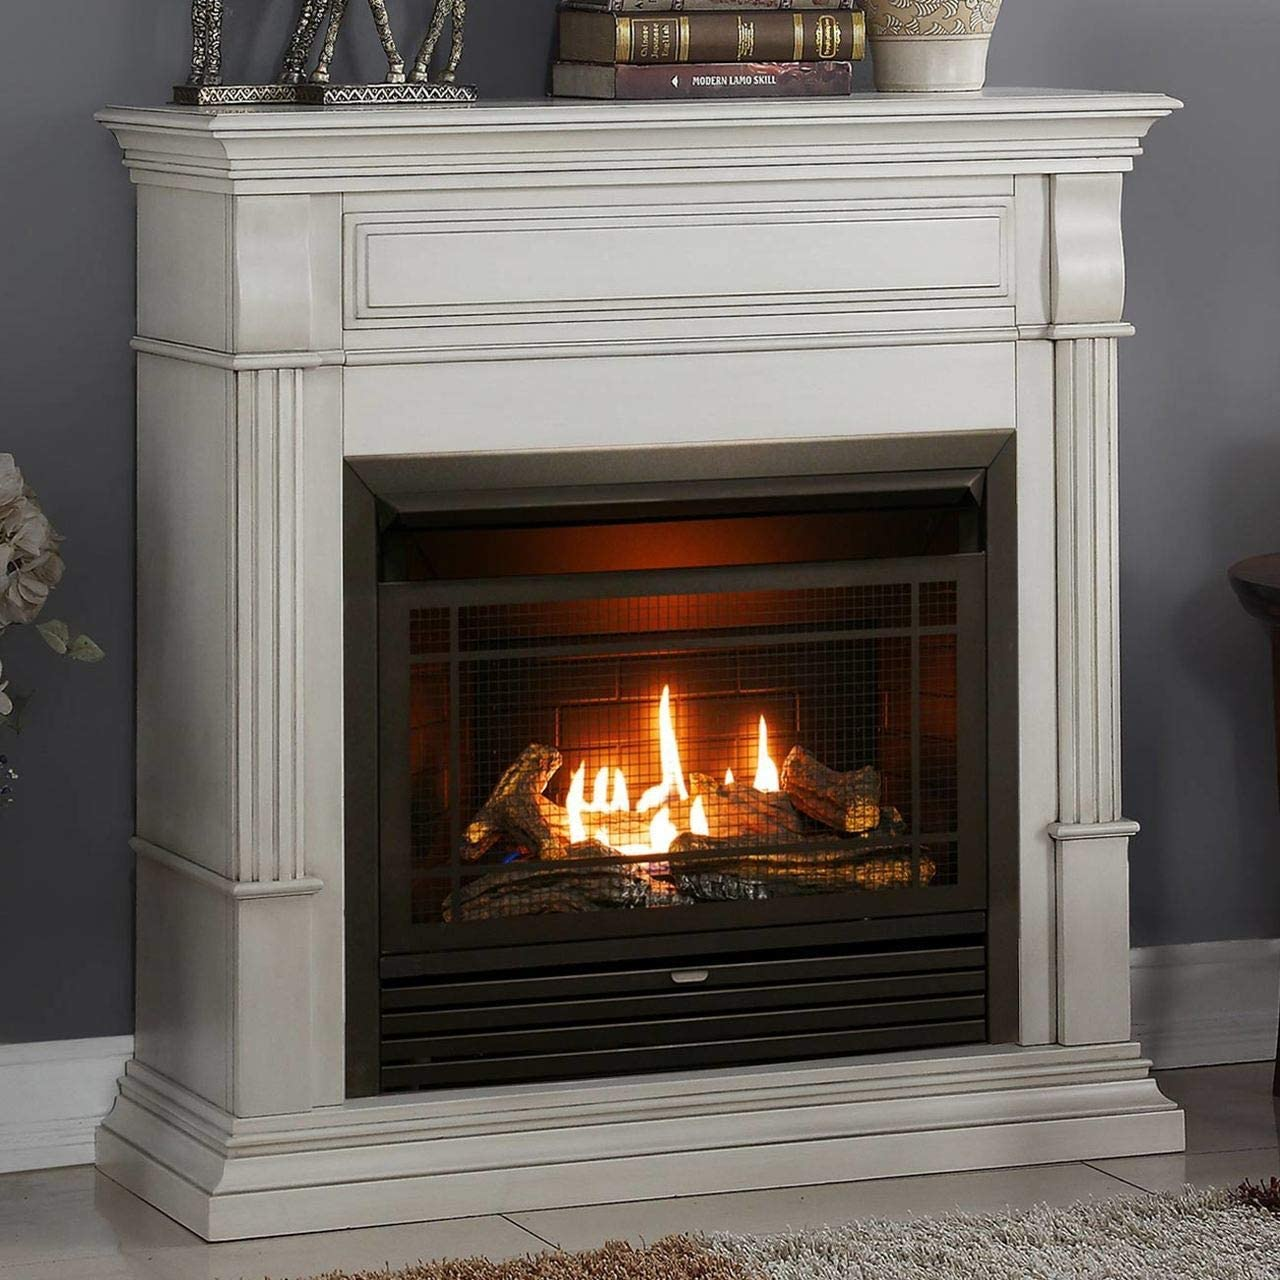 Amazon Com Duluth Forge Fdf300t Dual Fuel Ventless Fireplace